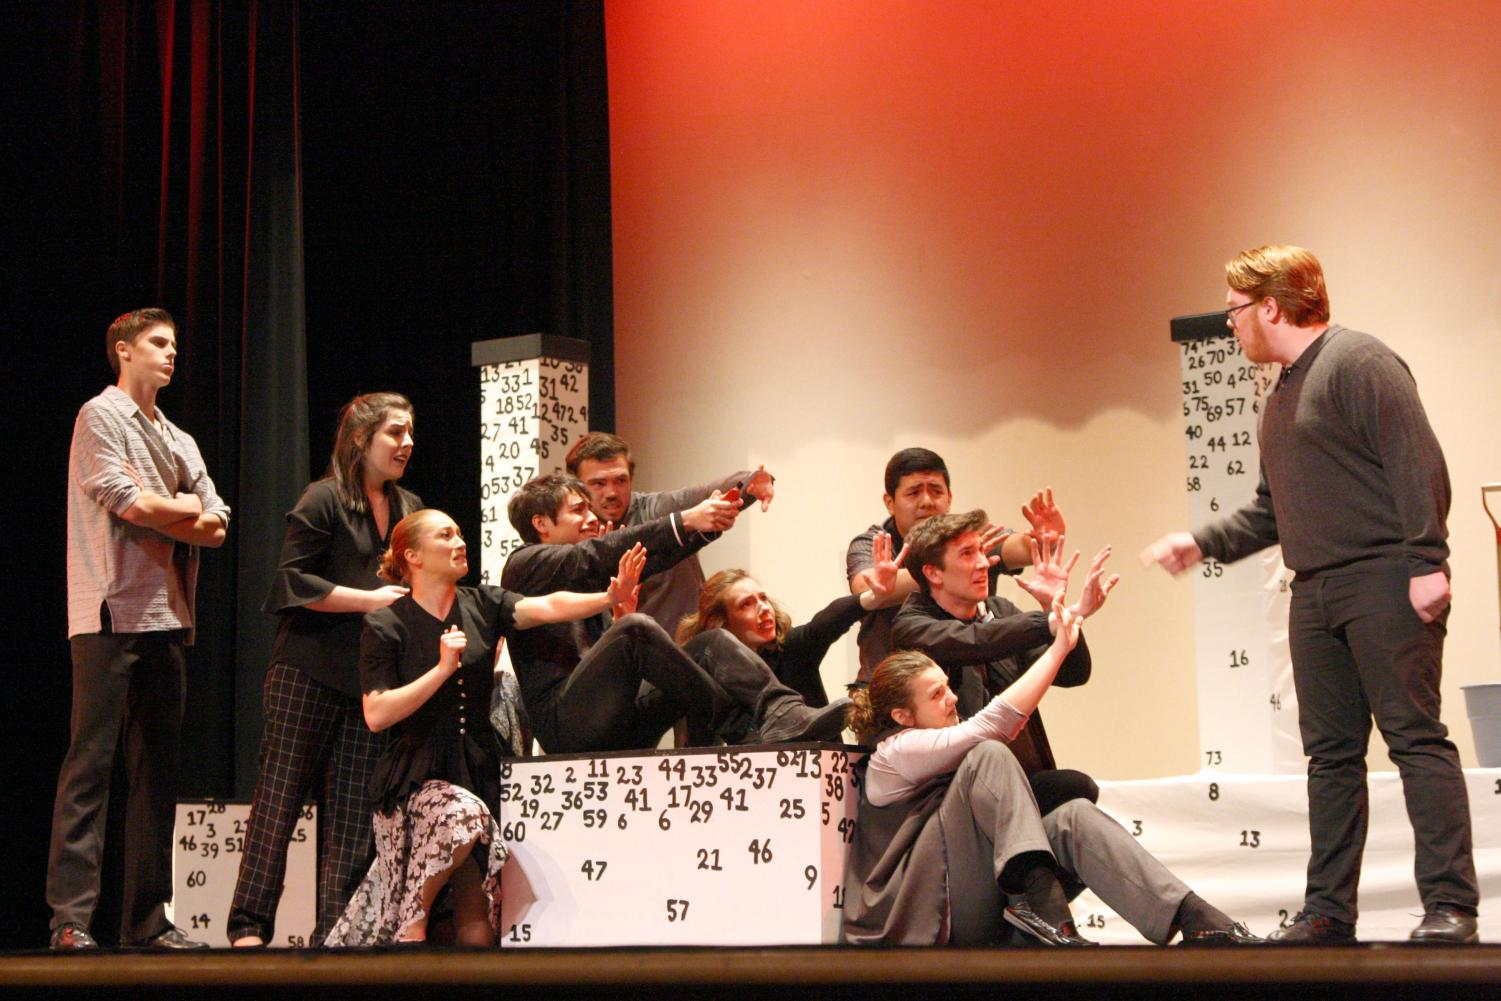 The One-Act Play features an ensemble which represent the main character's thoughts and emotions.